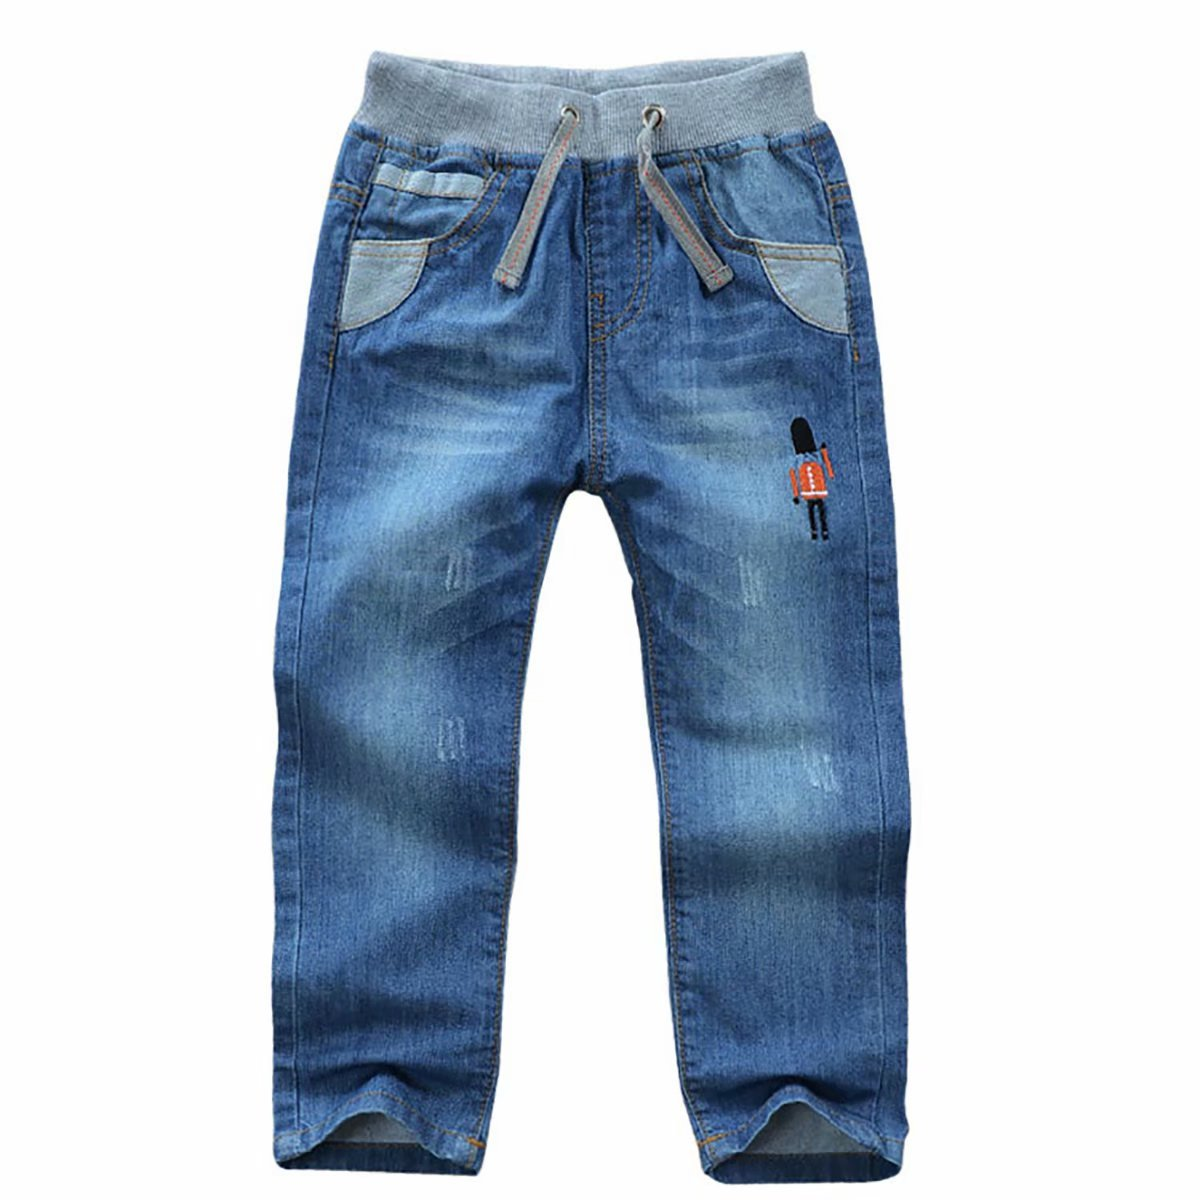 BiSHE Boys Girls Denim Jeans Trousers Toddler Pants Printed Pocket